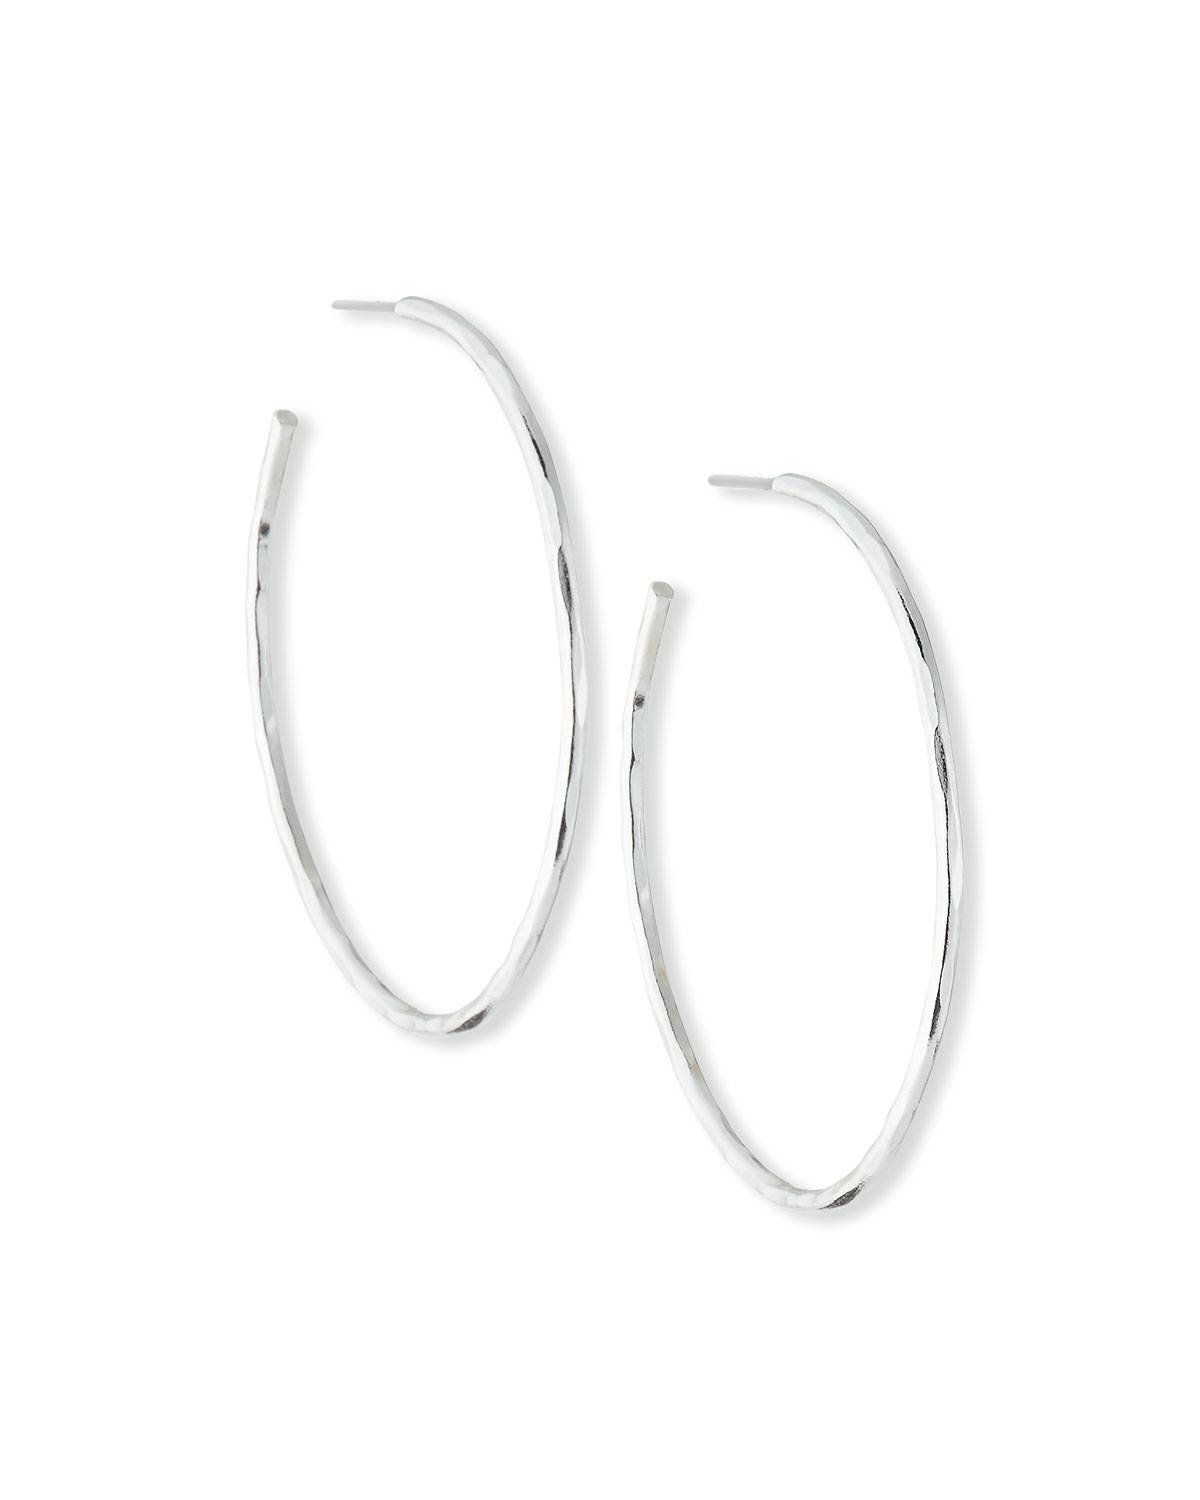 NEST Jewelry Silver Thin Hammered Earrings